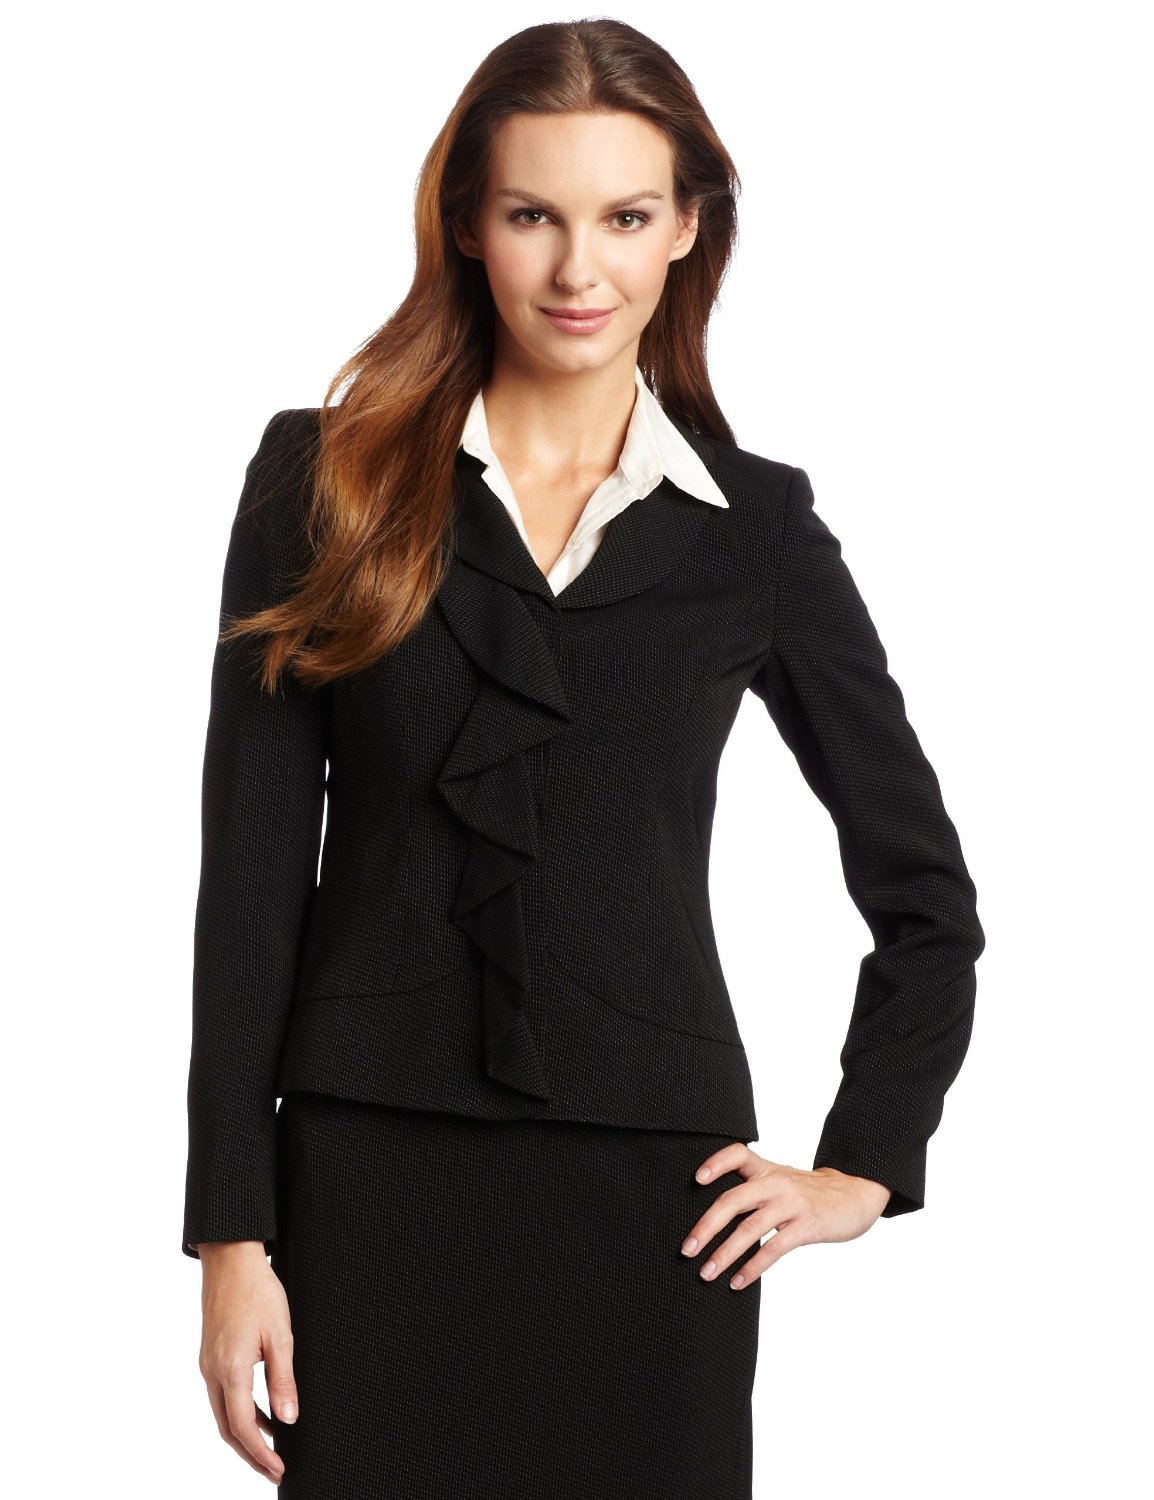 Brilliant Women Formal Office Work Knitted Dress Womens Pin Up Tunic Bodycon